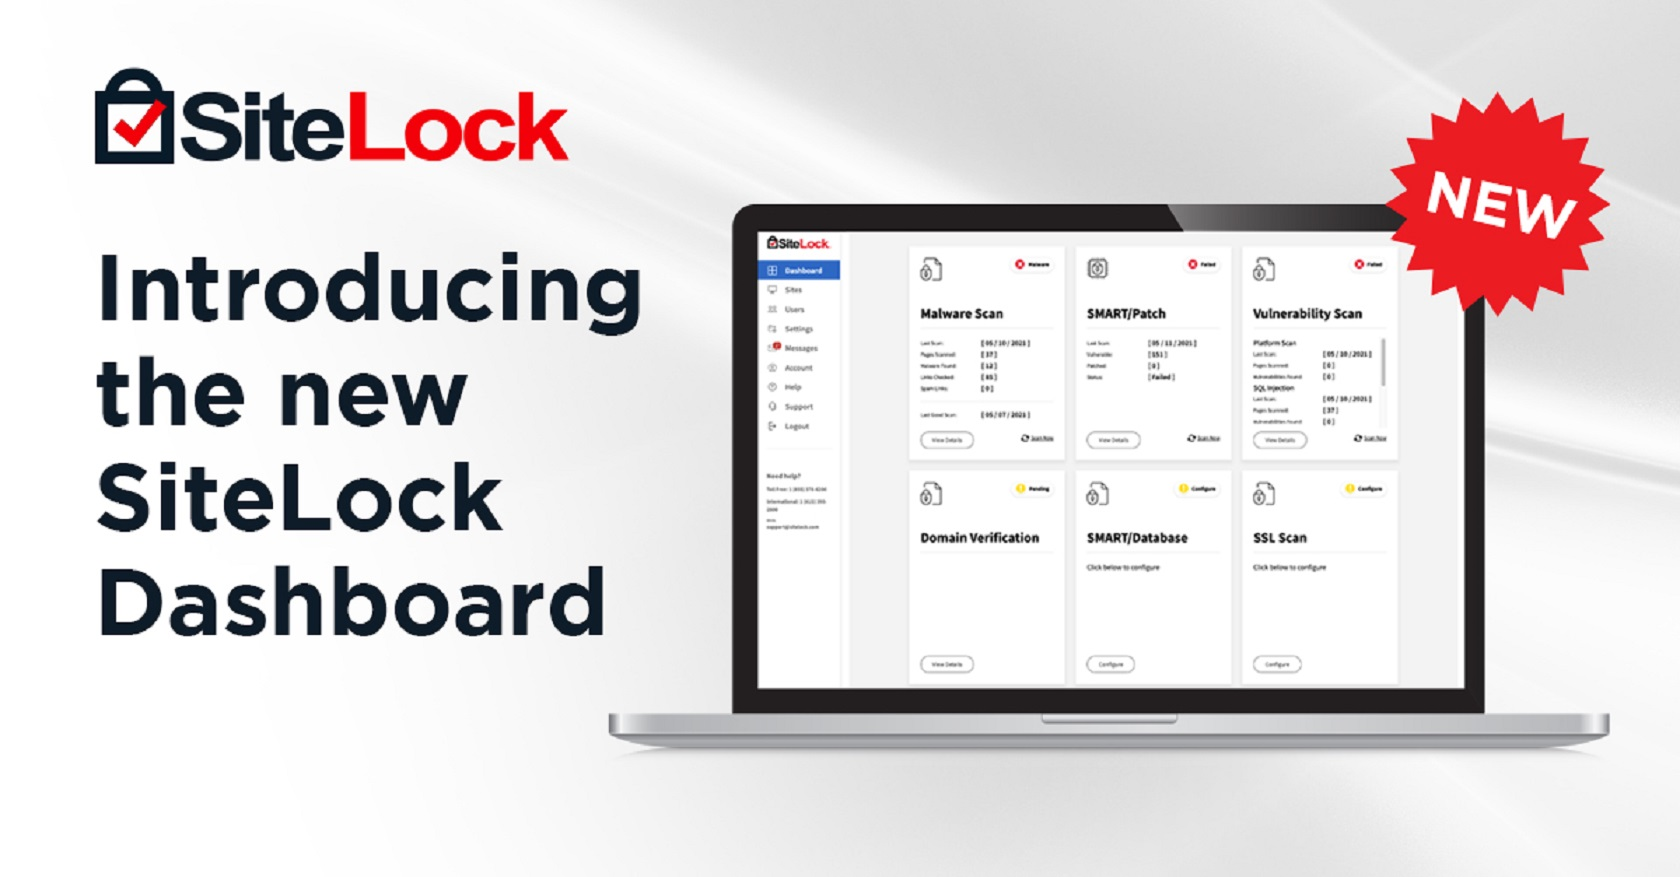 Here is the new SiteLock Dashboard for current/new customers and website security partners.